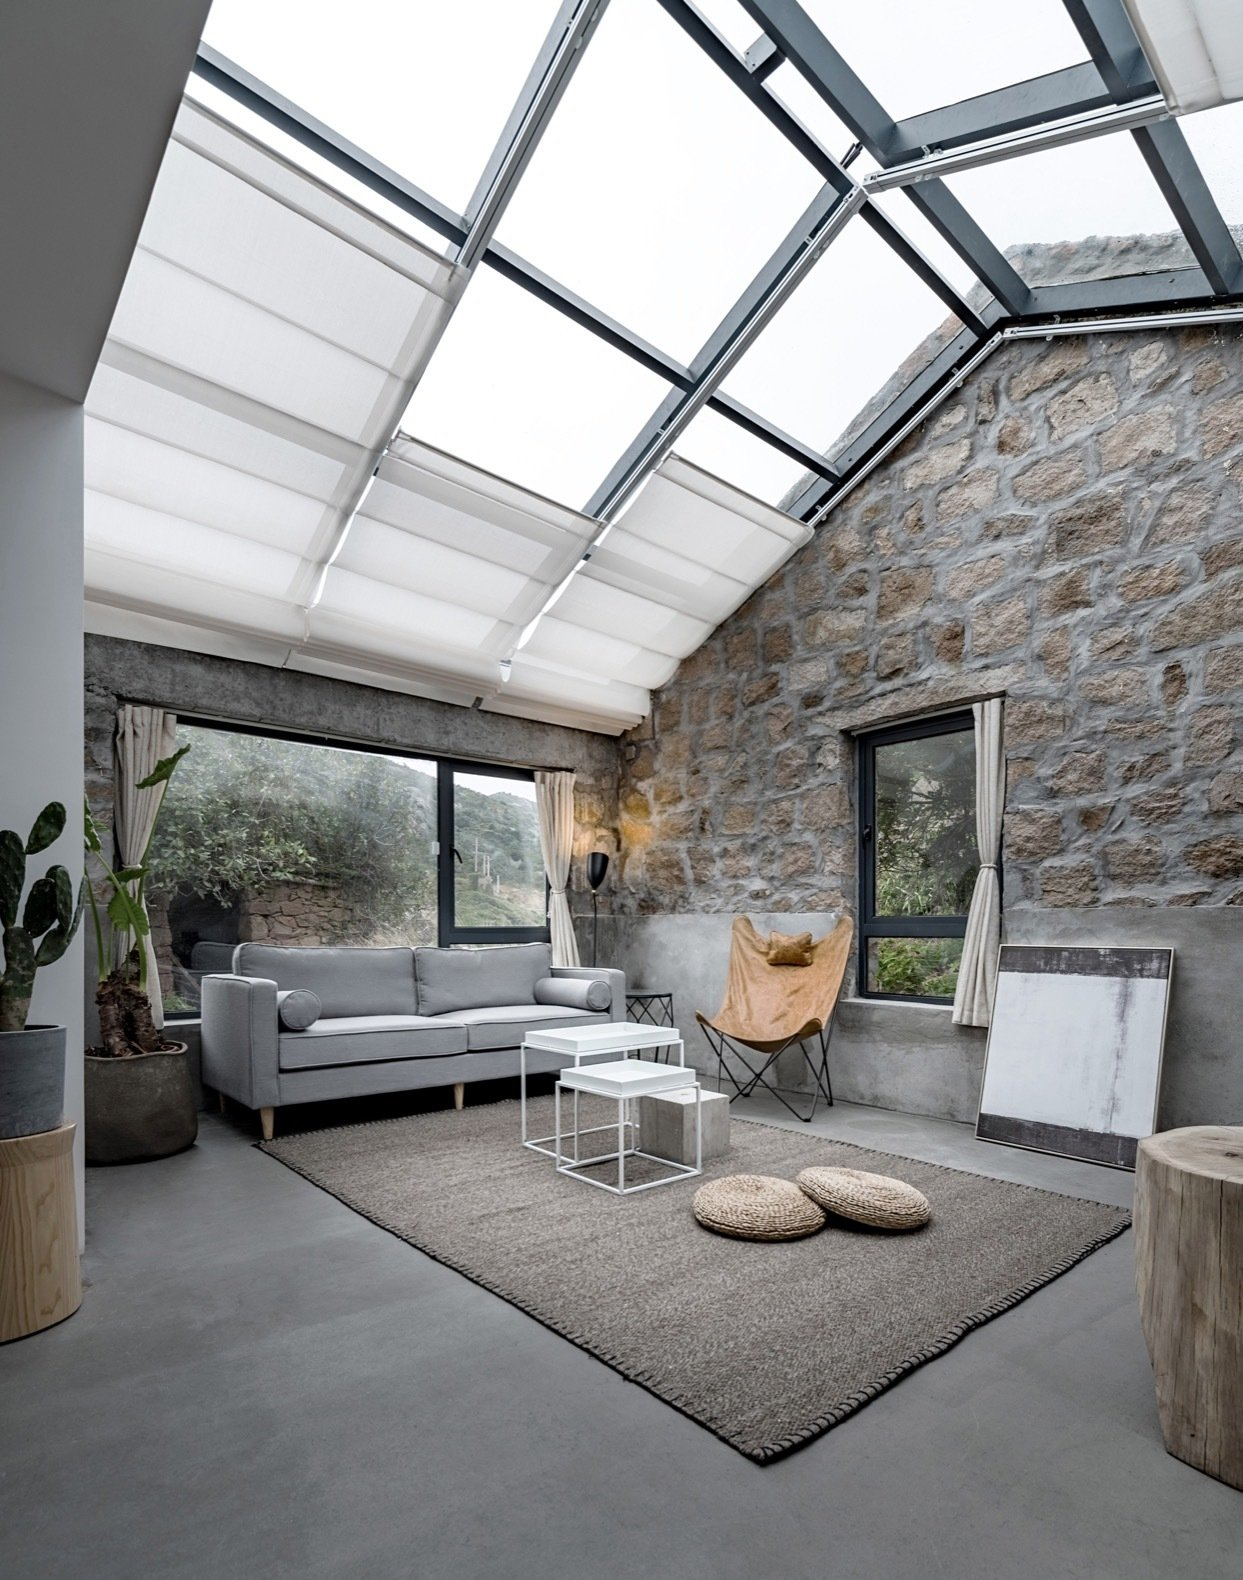 formerly-used-as-a-kitchen-the-space-next-to-the-master-bedroom-has-been-turned-into-a-living-area-retractable-shades-cover-the-gla